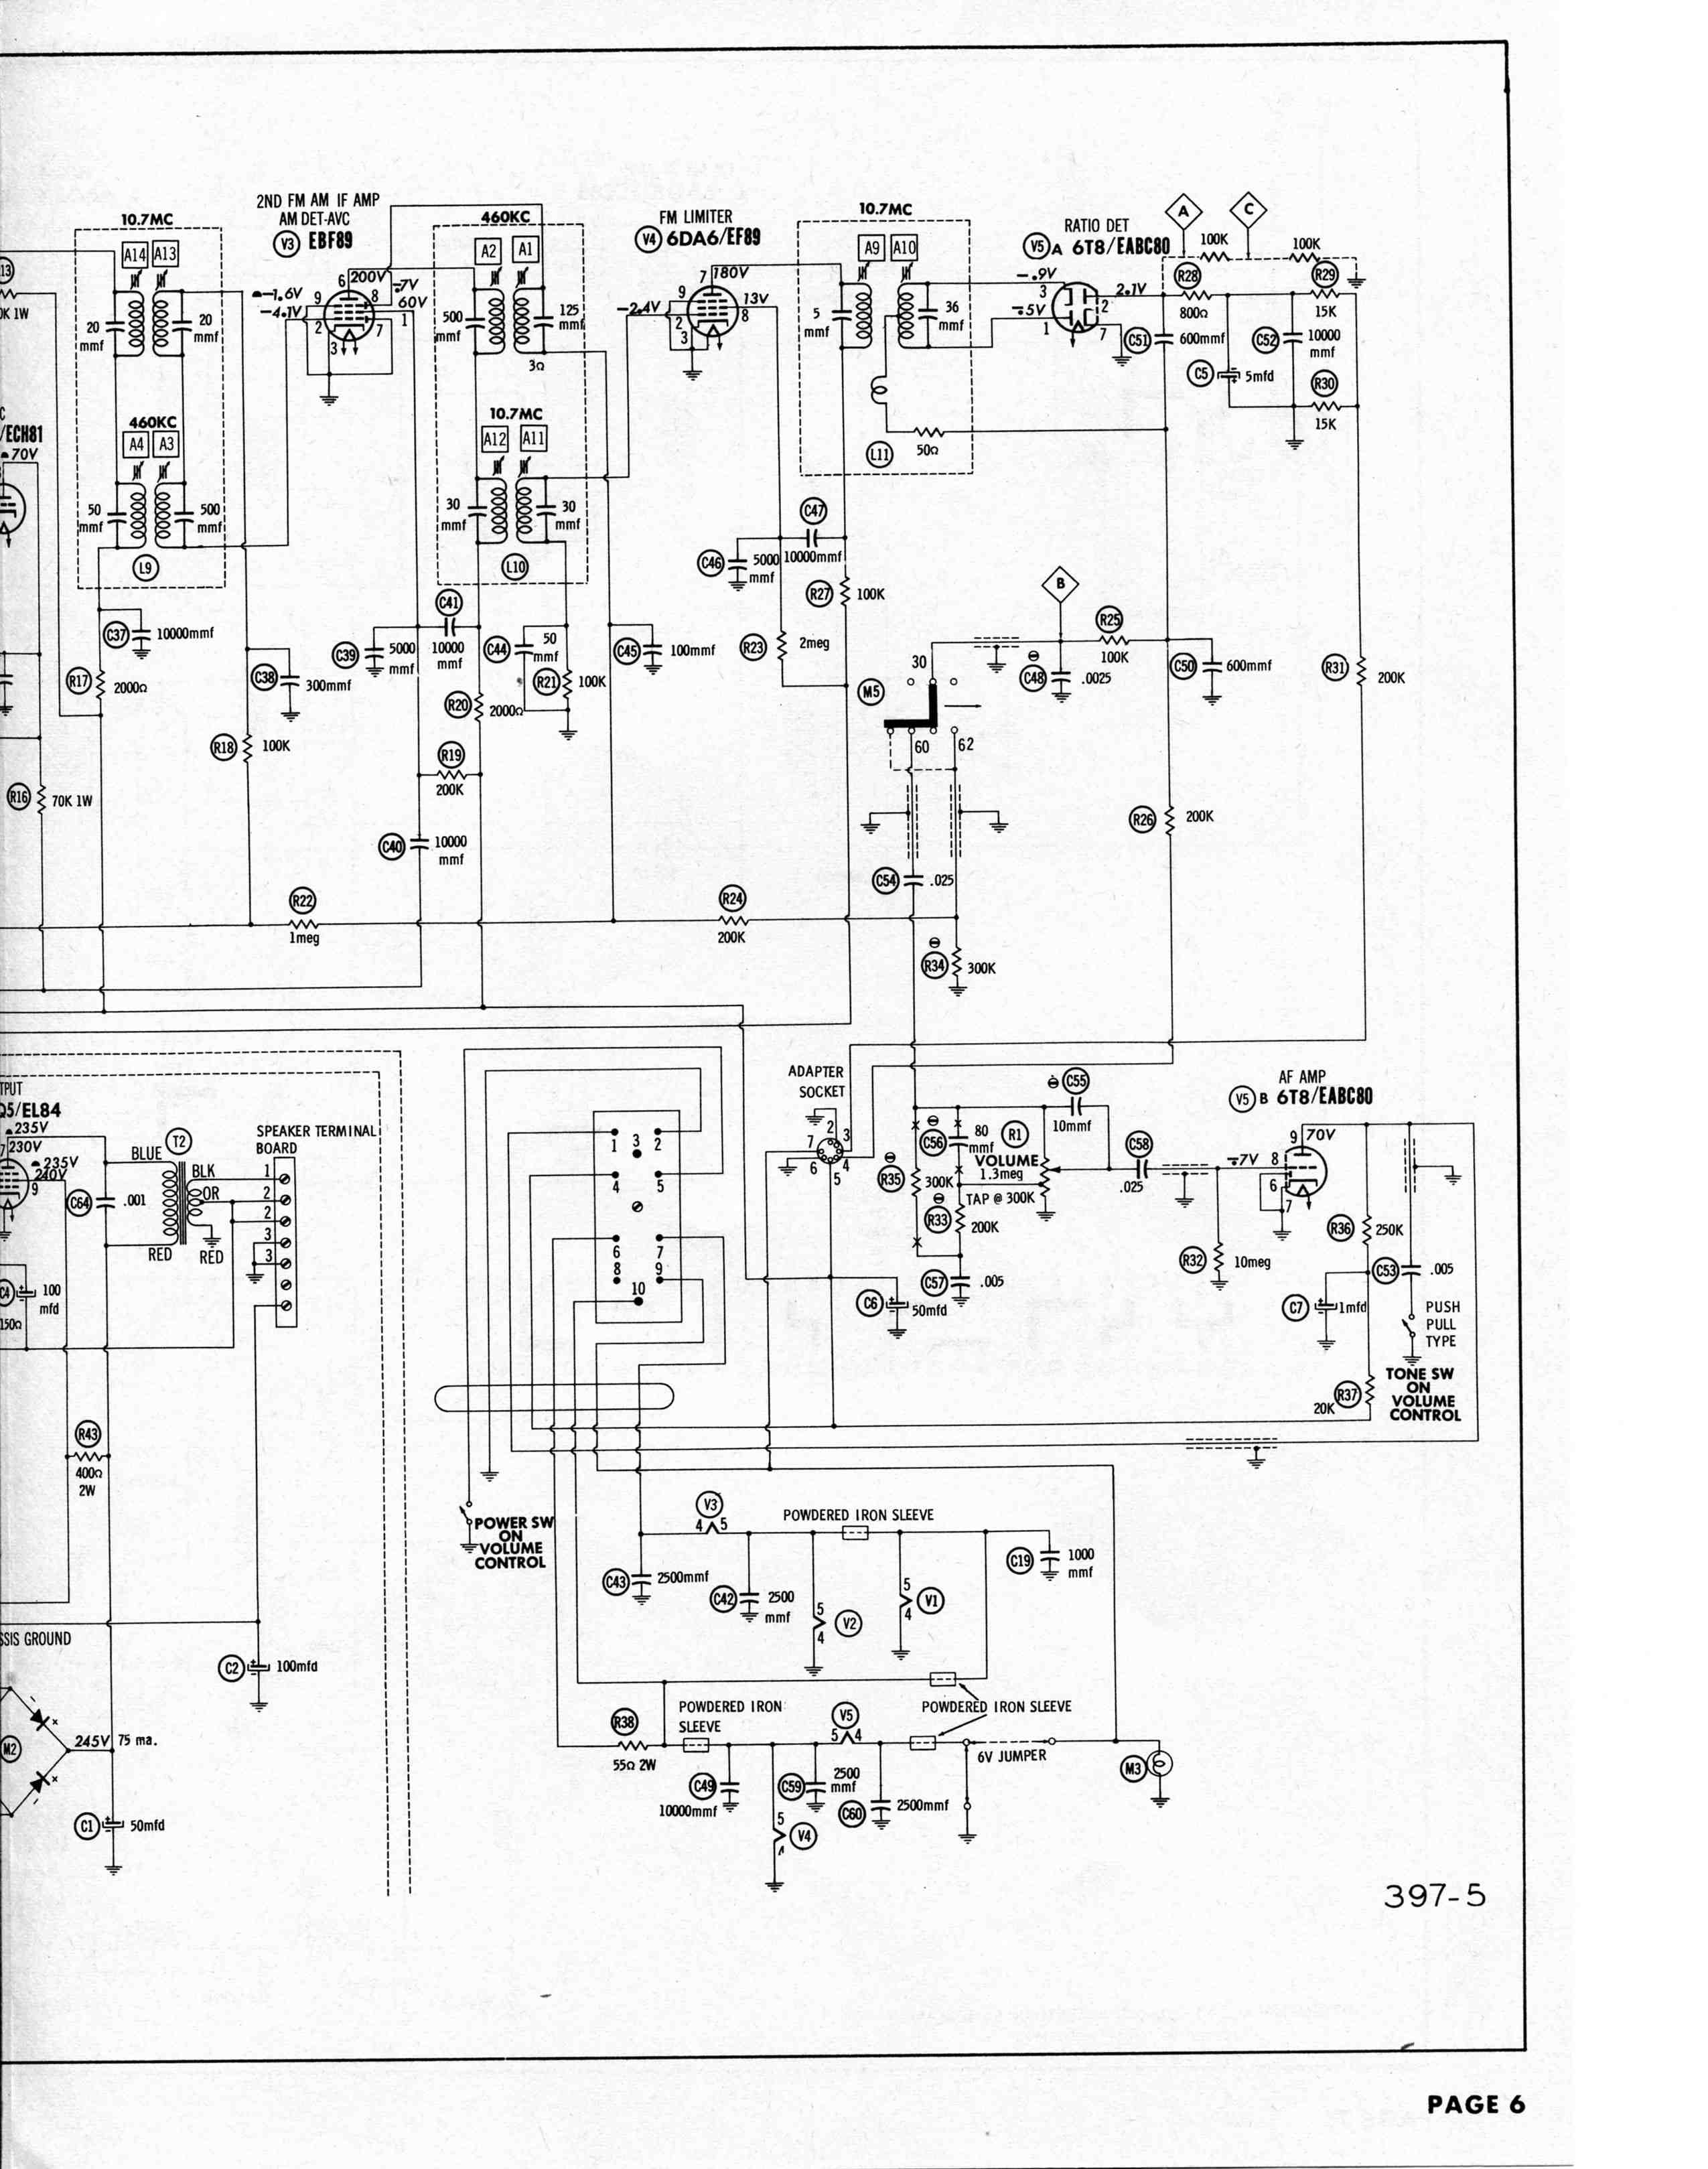 Becker Car Radio Wiring Diagram : Becker europa wiring diagram images